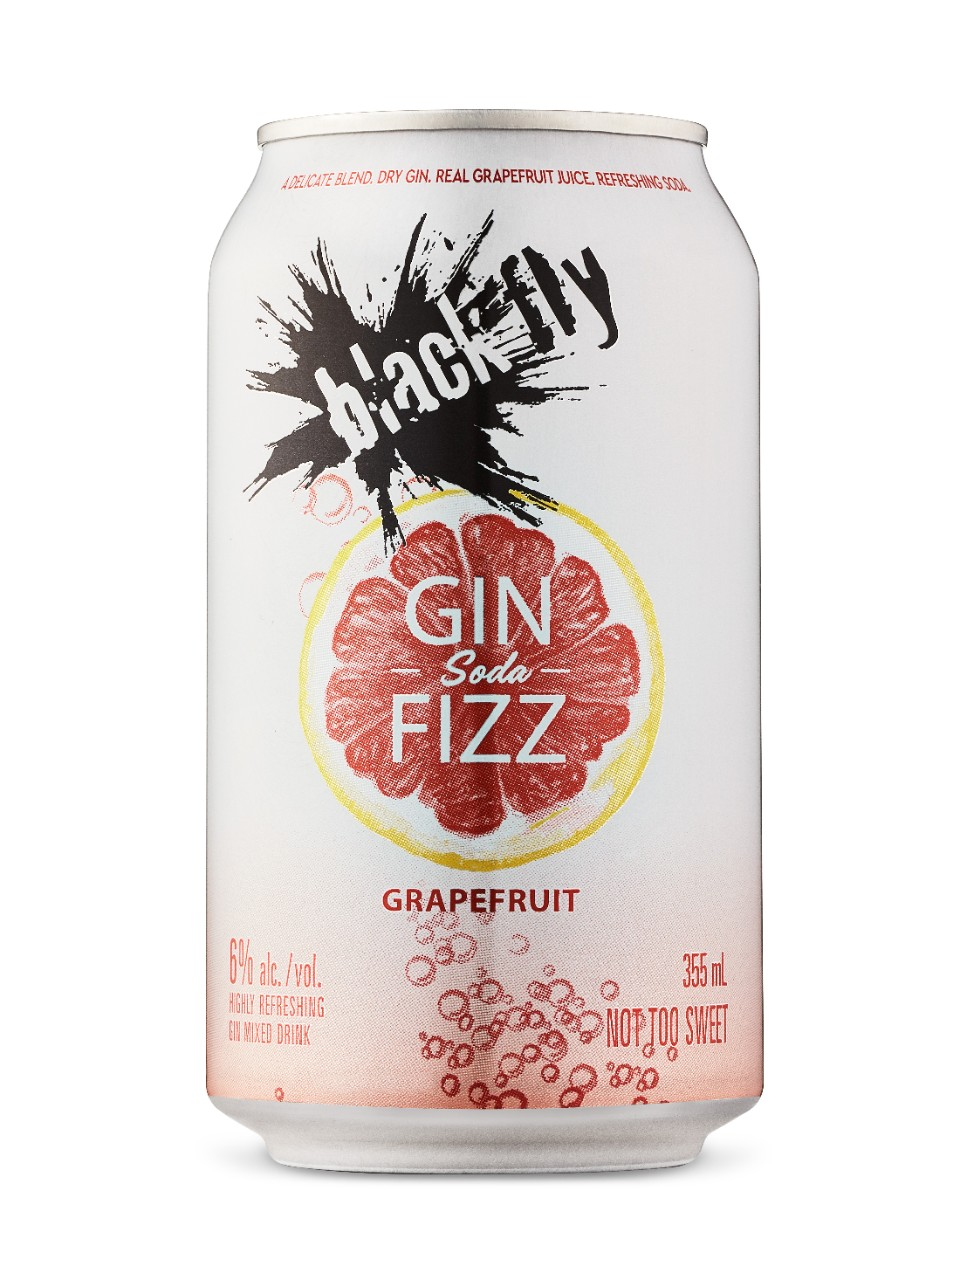 Image for Black Fly Grapefruit Gin Fizz from LCBO